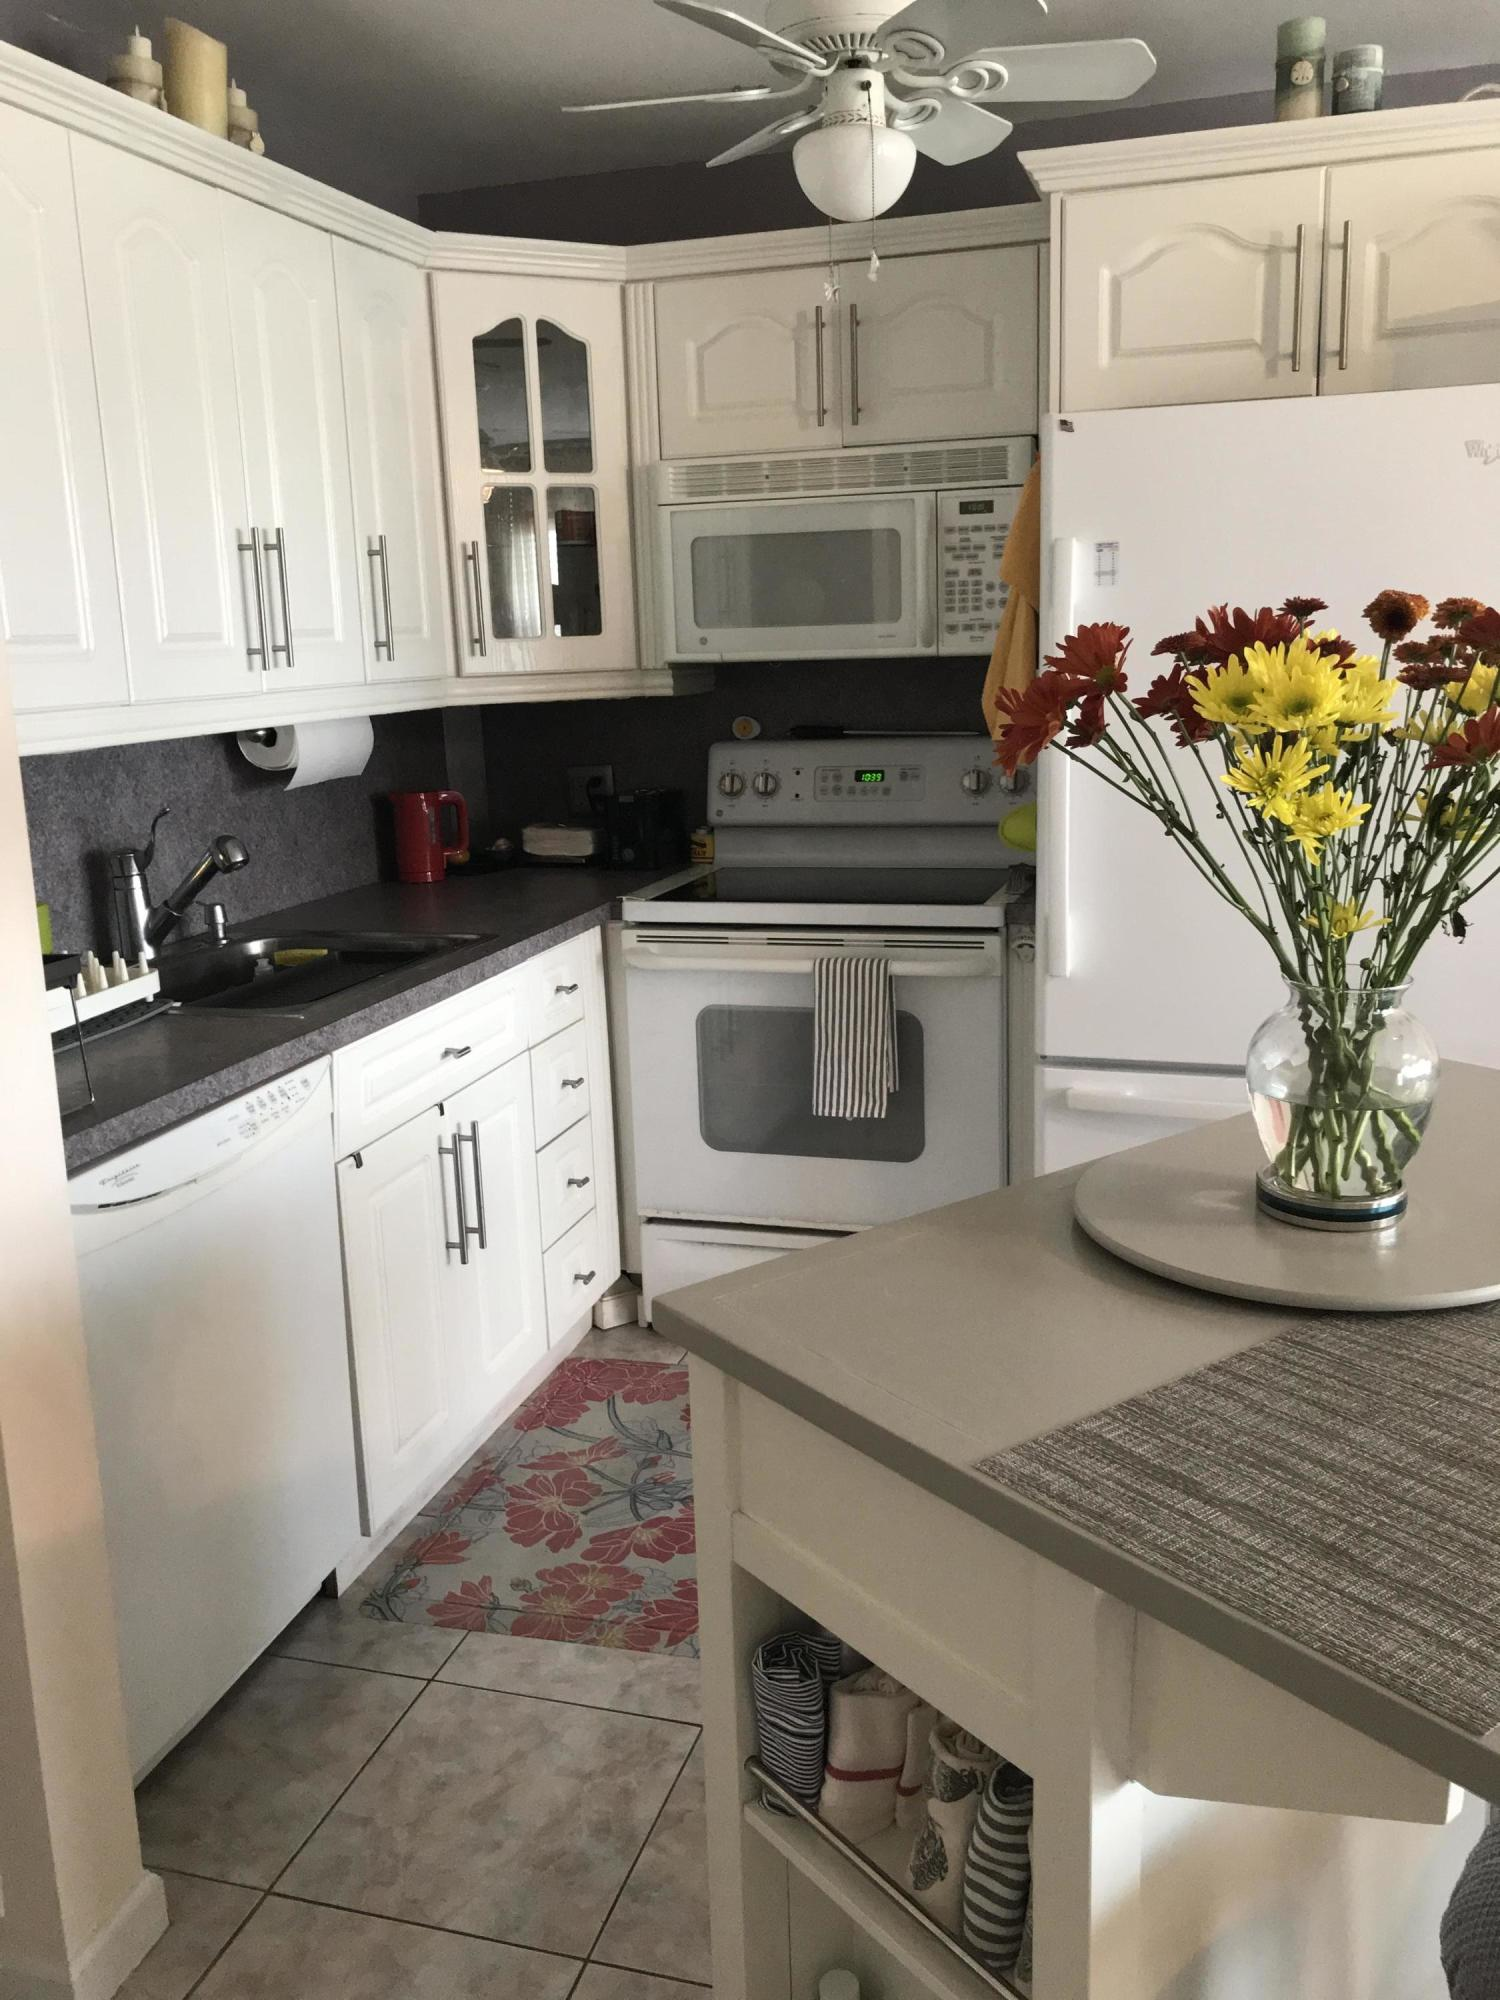 408 Southampton A, West Palm Beach, Florida 33417, 1 Bedroom Bedrooms, ,1 BathroomBathrooms,Residential,For Sale,Southampton A,RX-10660949